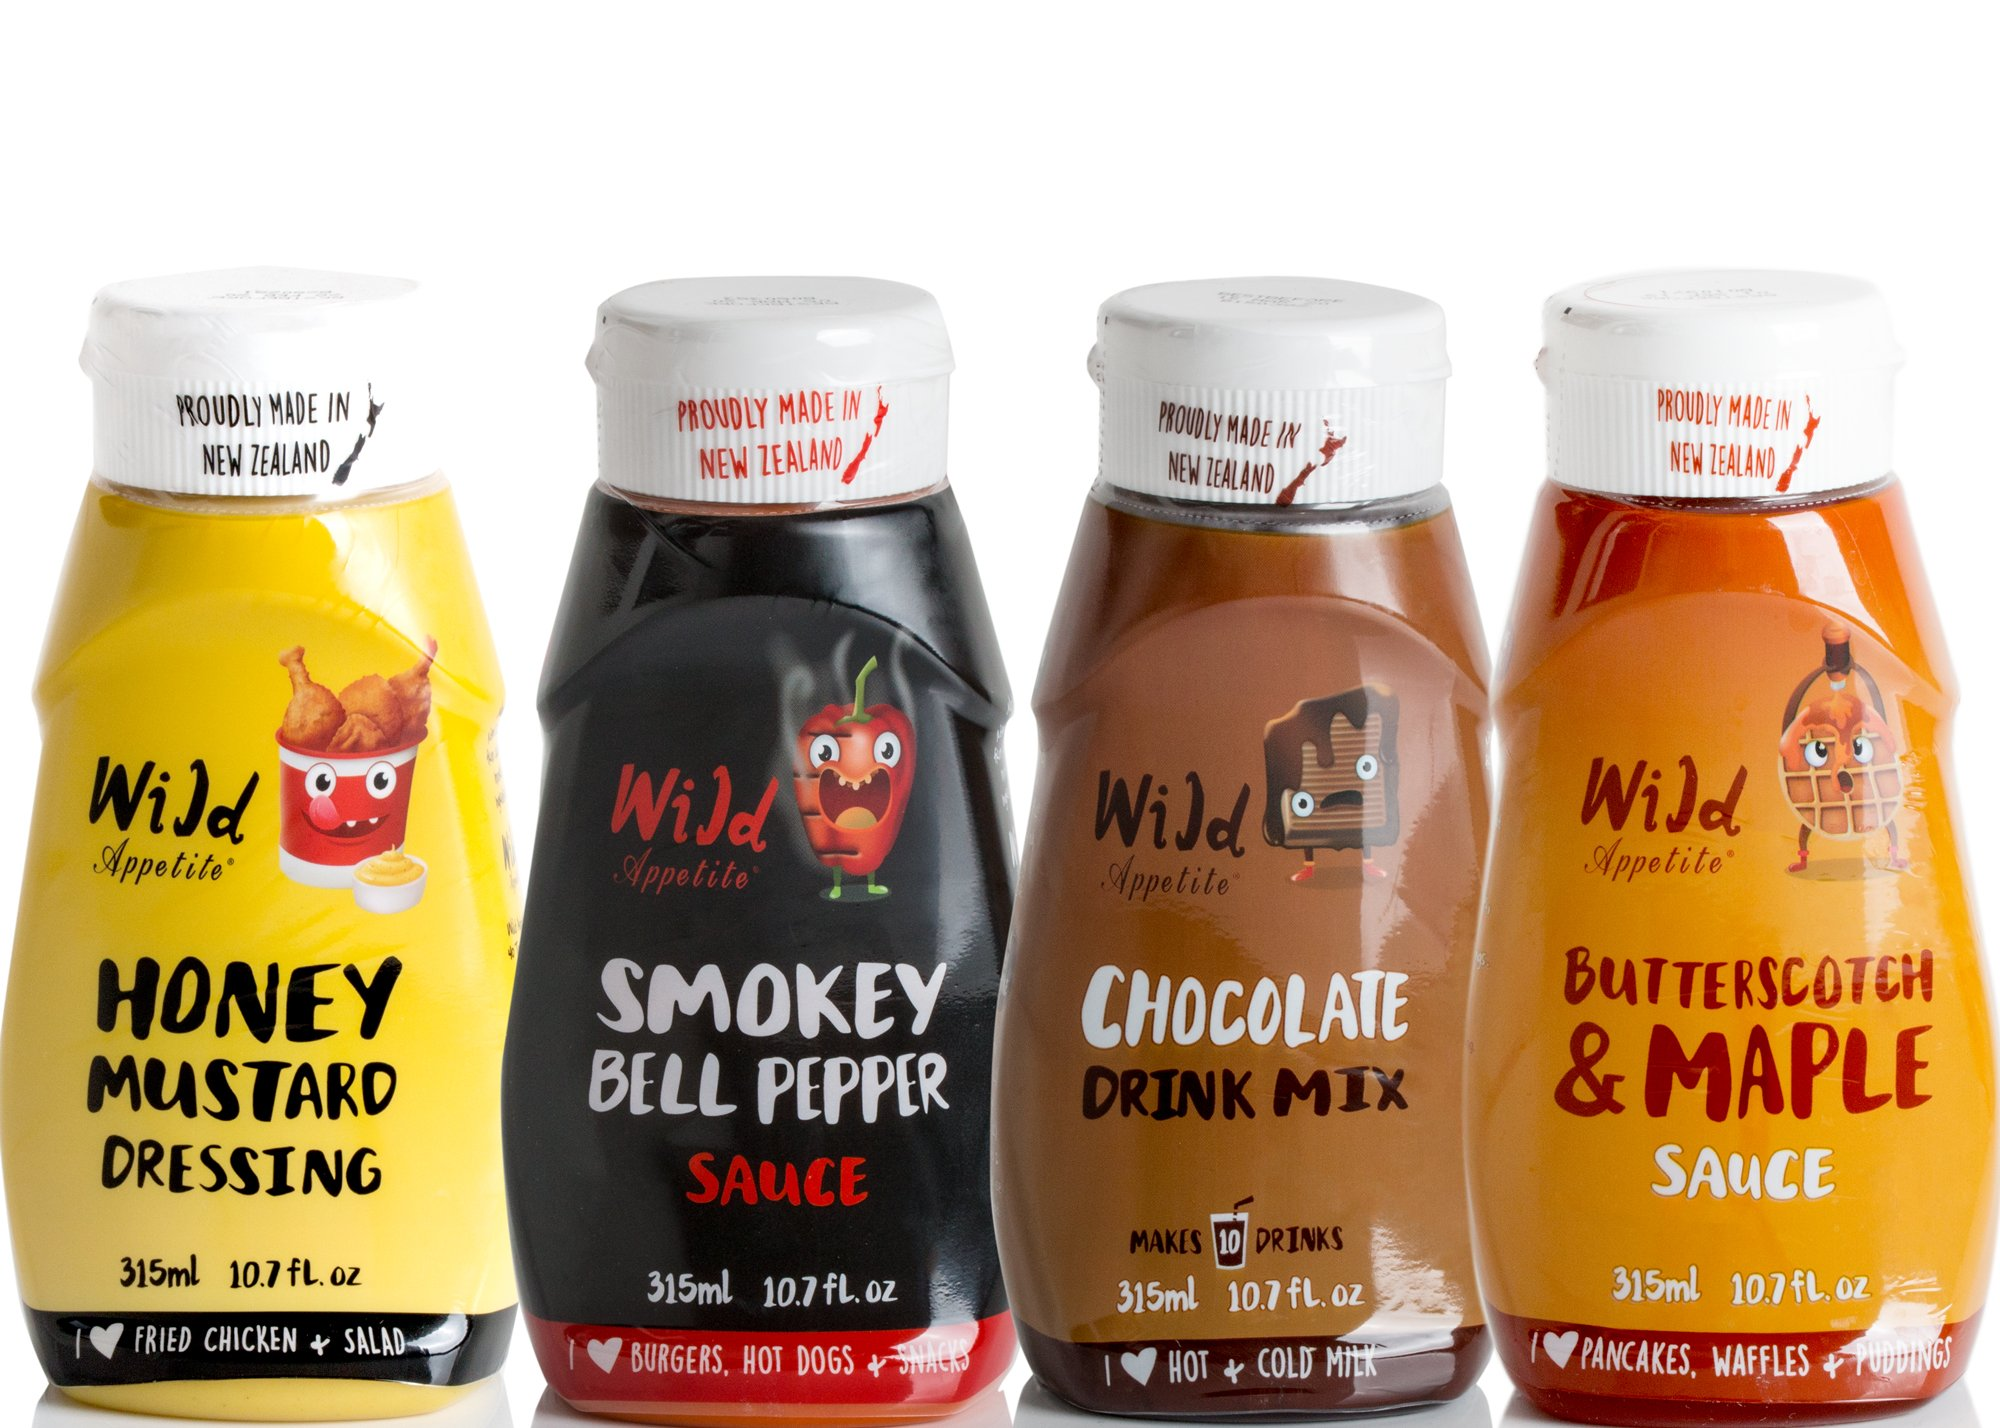 Wild Appetite, Combo 4 Pack, 1 x Honey Mustard Dressing and 1 x Smokey Bell Pepper and 1 x Butterscotch & Maple Sauce and 1 x Chocolate Drink Mix, 4 x 10.6oz